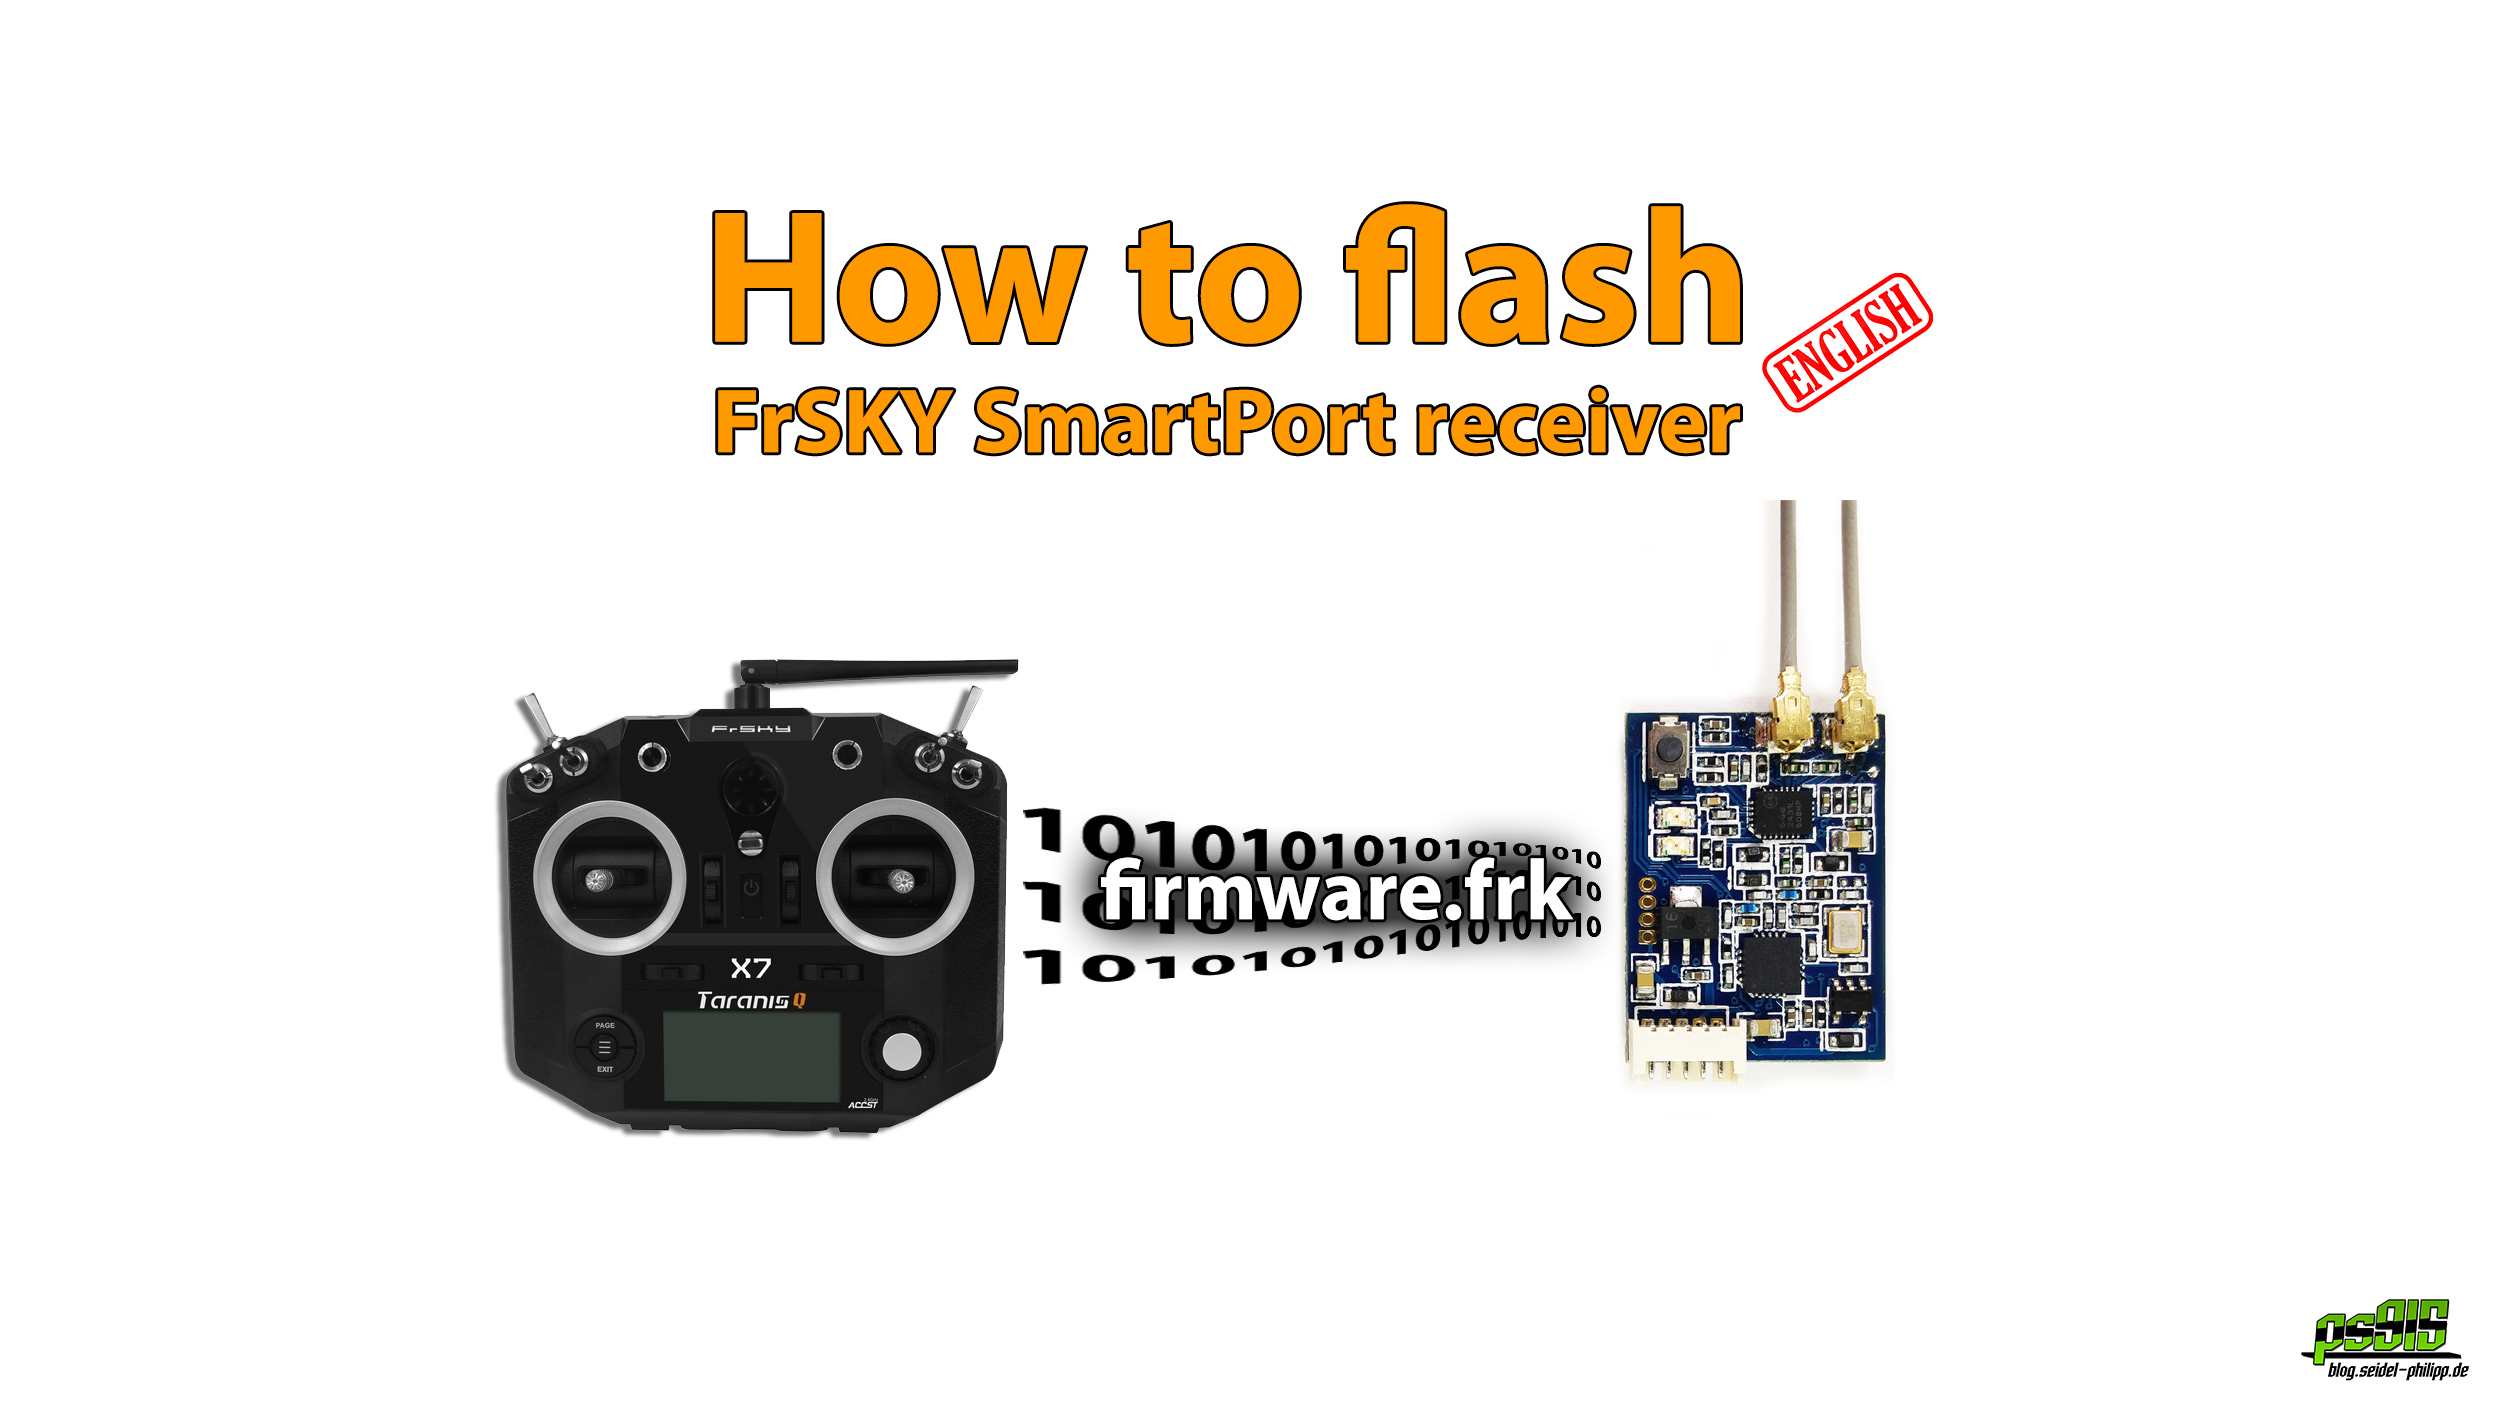 How to flash a FrSKY SmartPort receiver with Taranis 9XD or